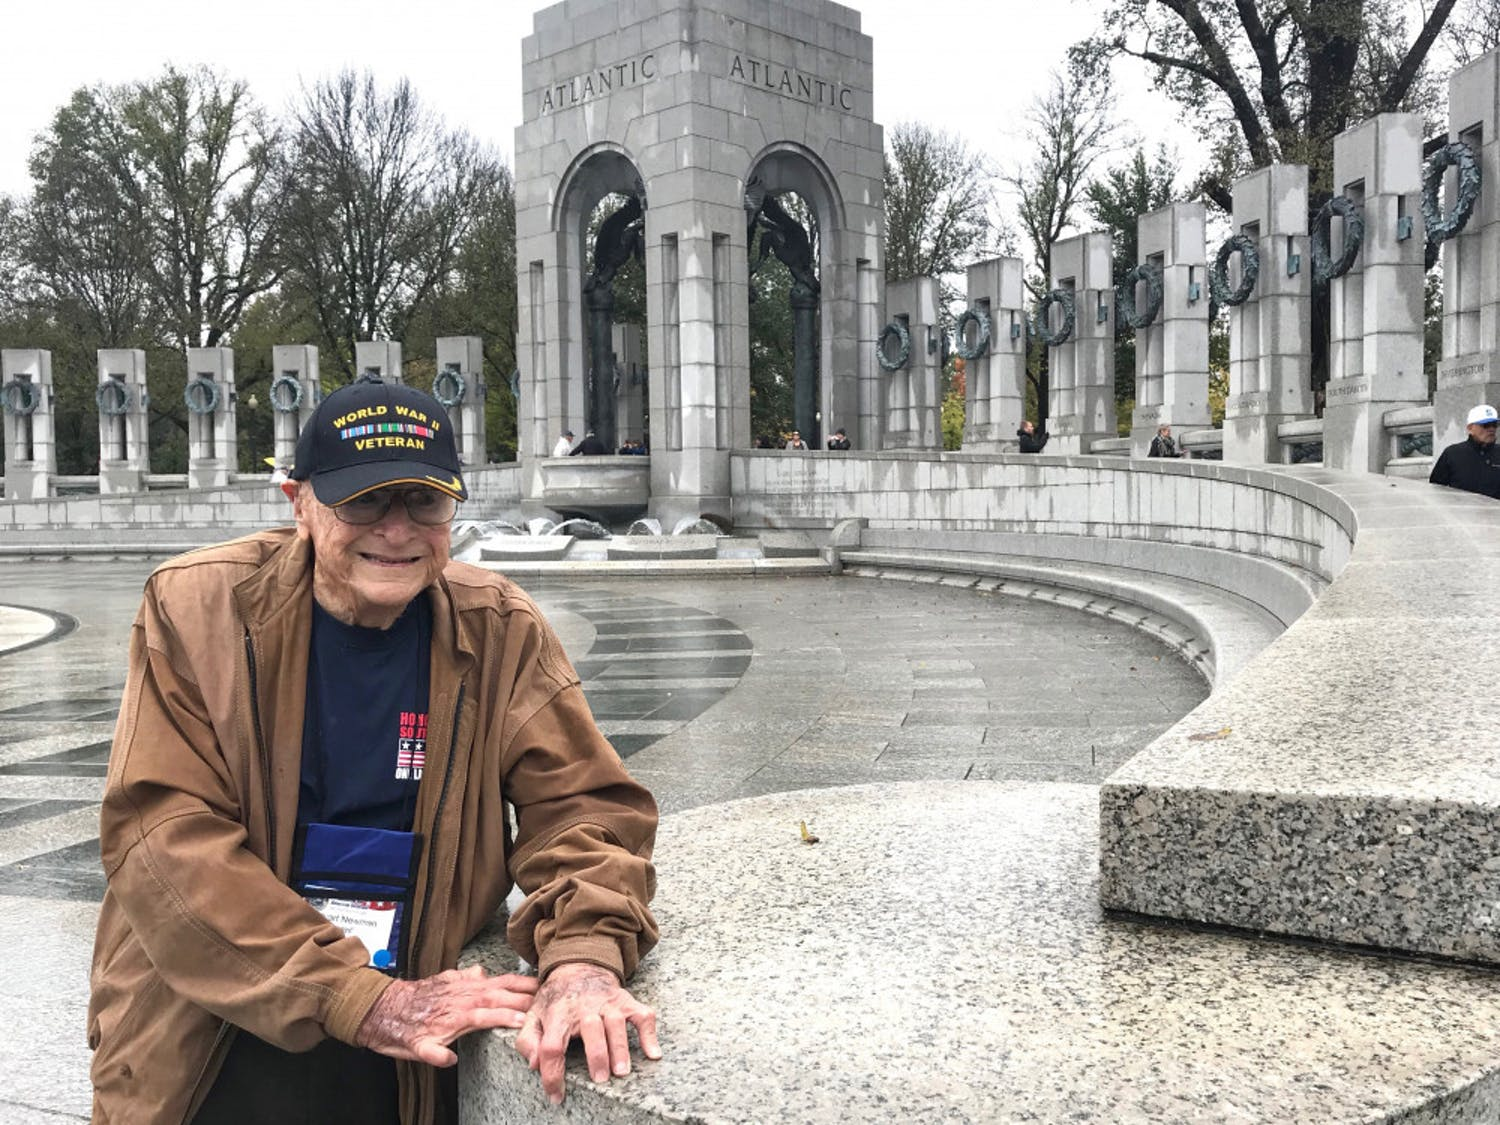 Stuart Newman visits the World War II Memorial located in Washington D.C. in late October 2018. Newman was a WWII veteran.